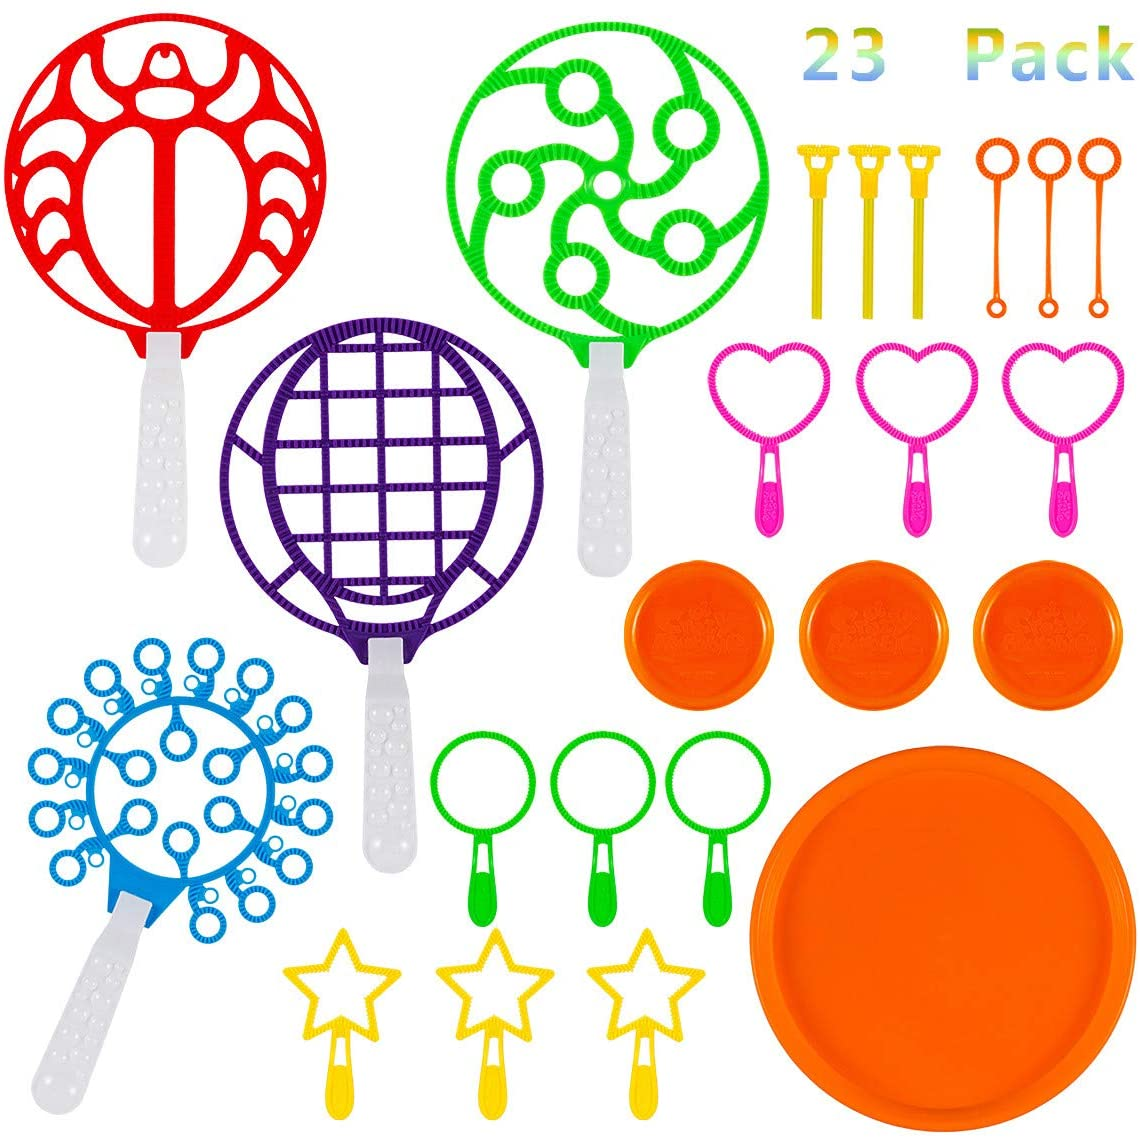 23 Pack Big Bubble Wands Set, Jumbo Colorful Bubble Wand Toy Set Bubble Making Wand with Dipping Dish for Kids and Adults Summer Outdoor Activity Party